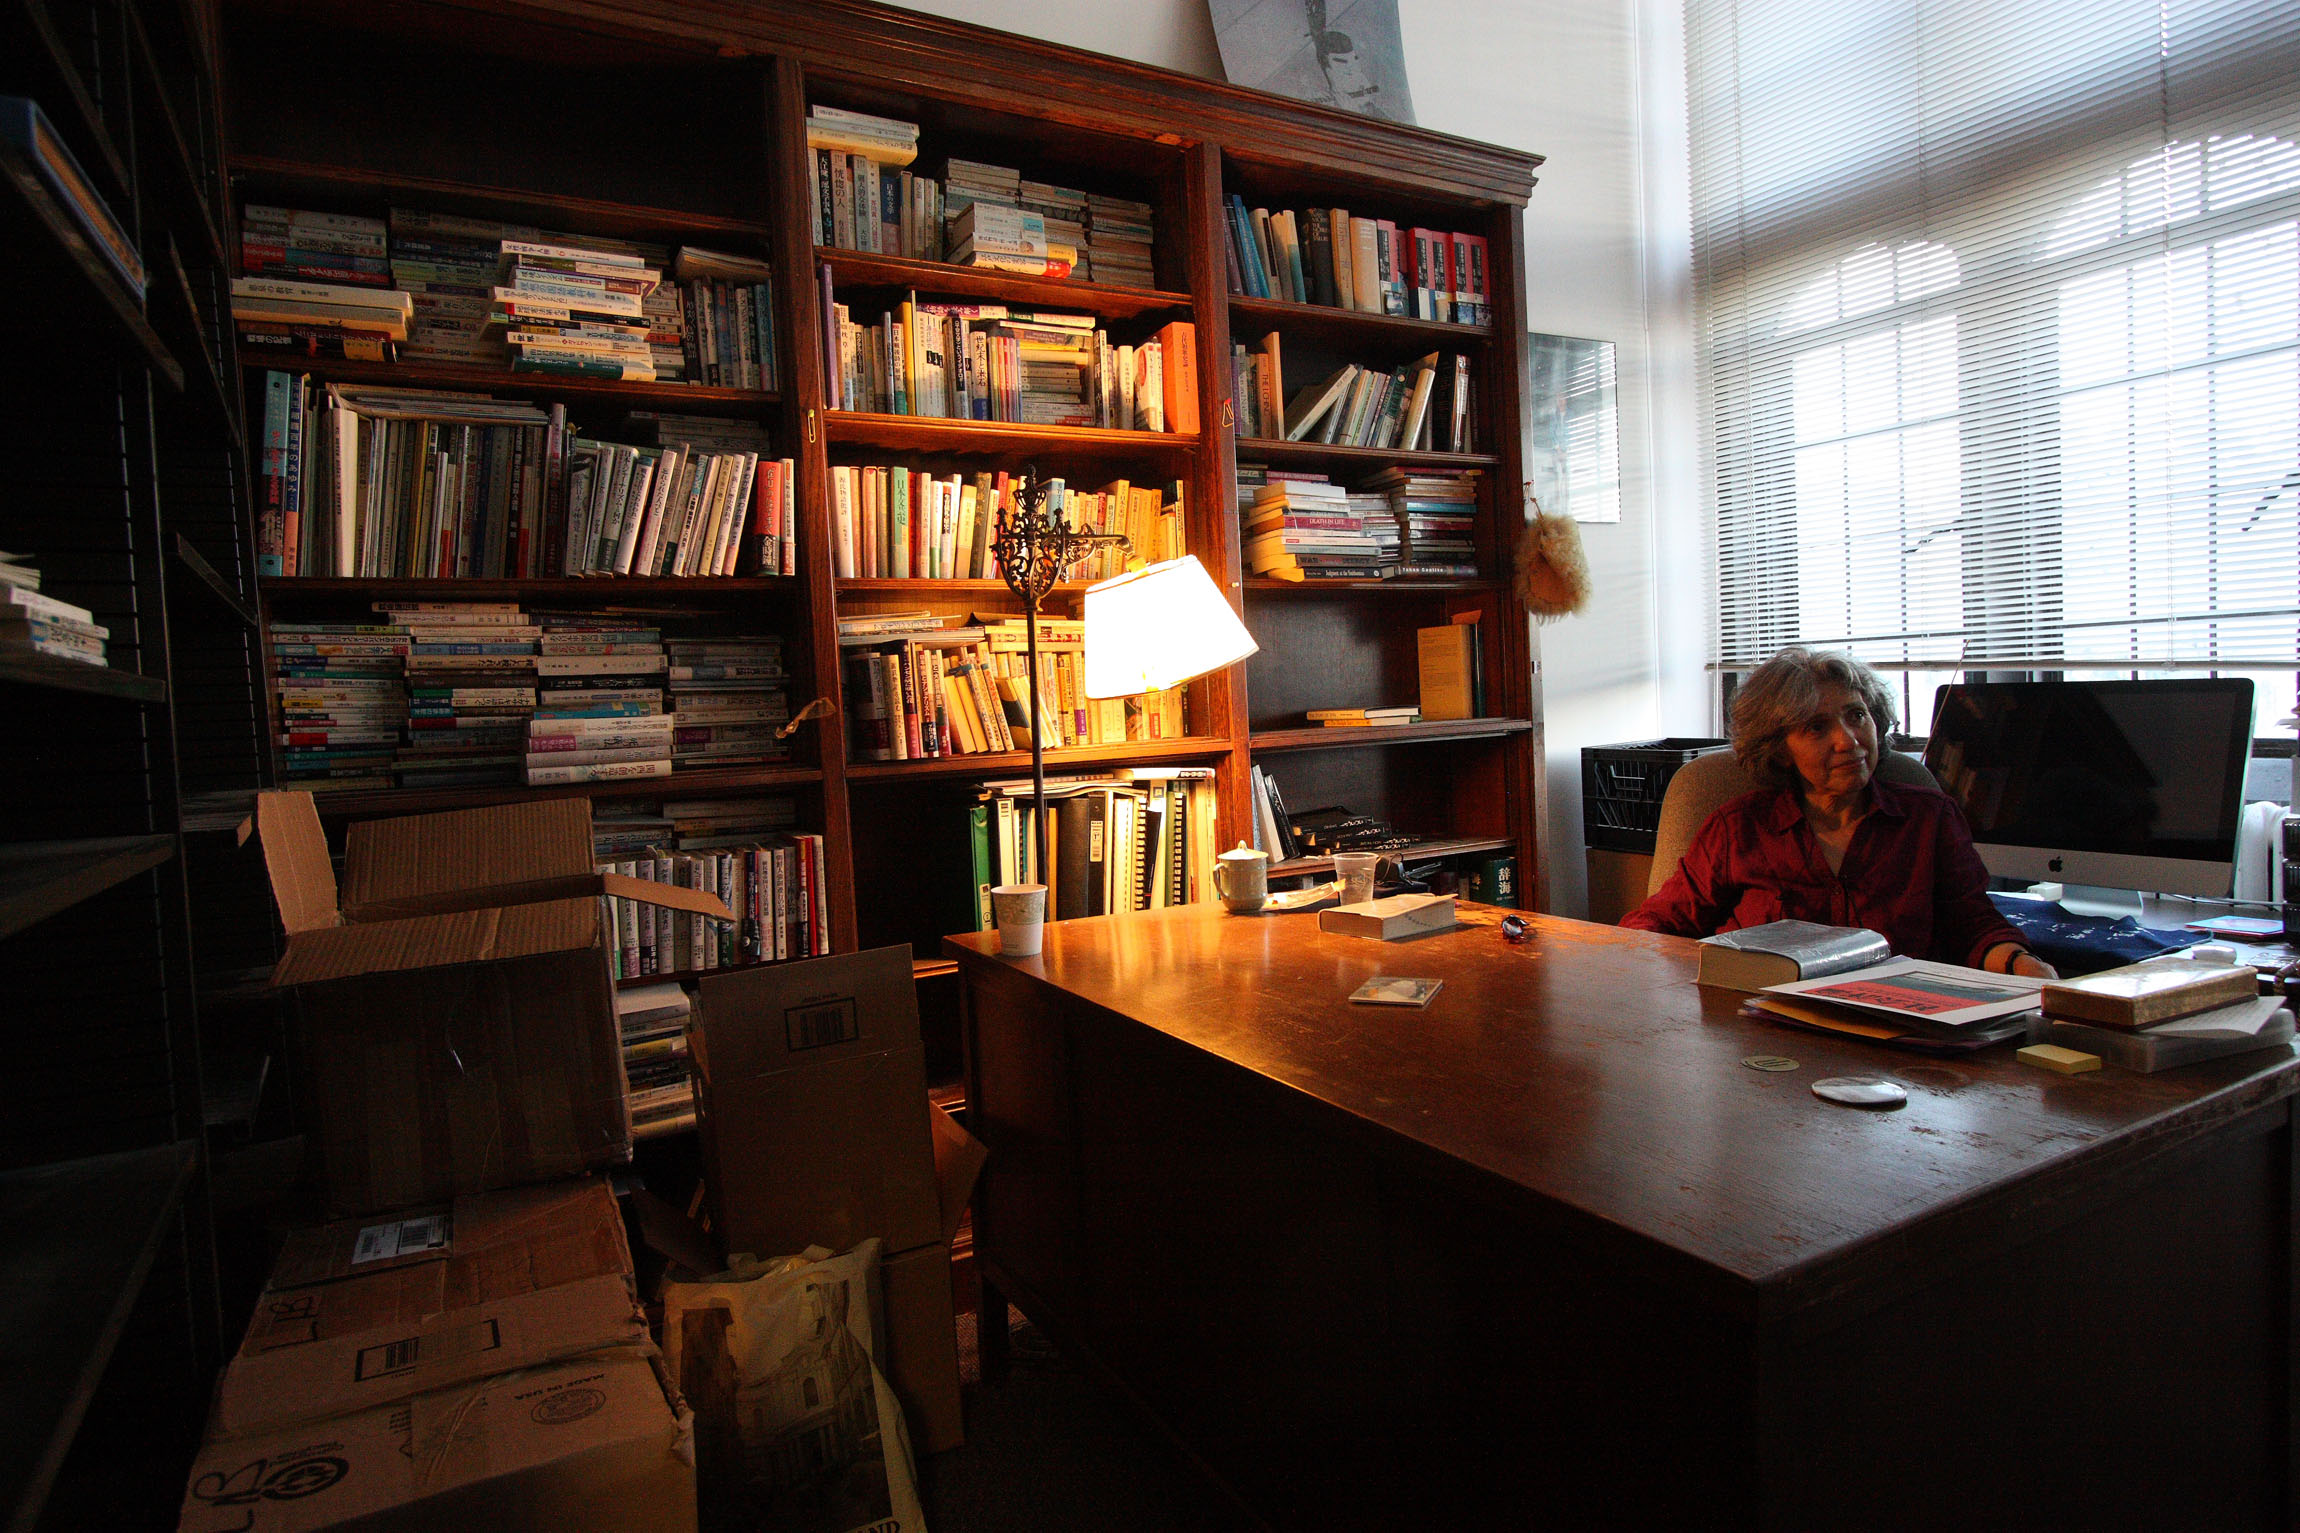 In her realm: Field packs up her office at the University of Chicago shortly before her retirement.